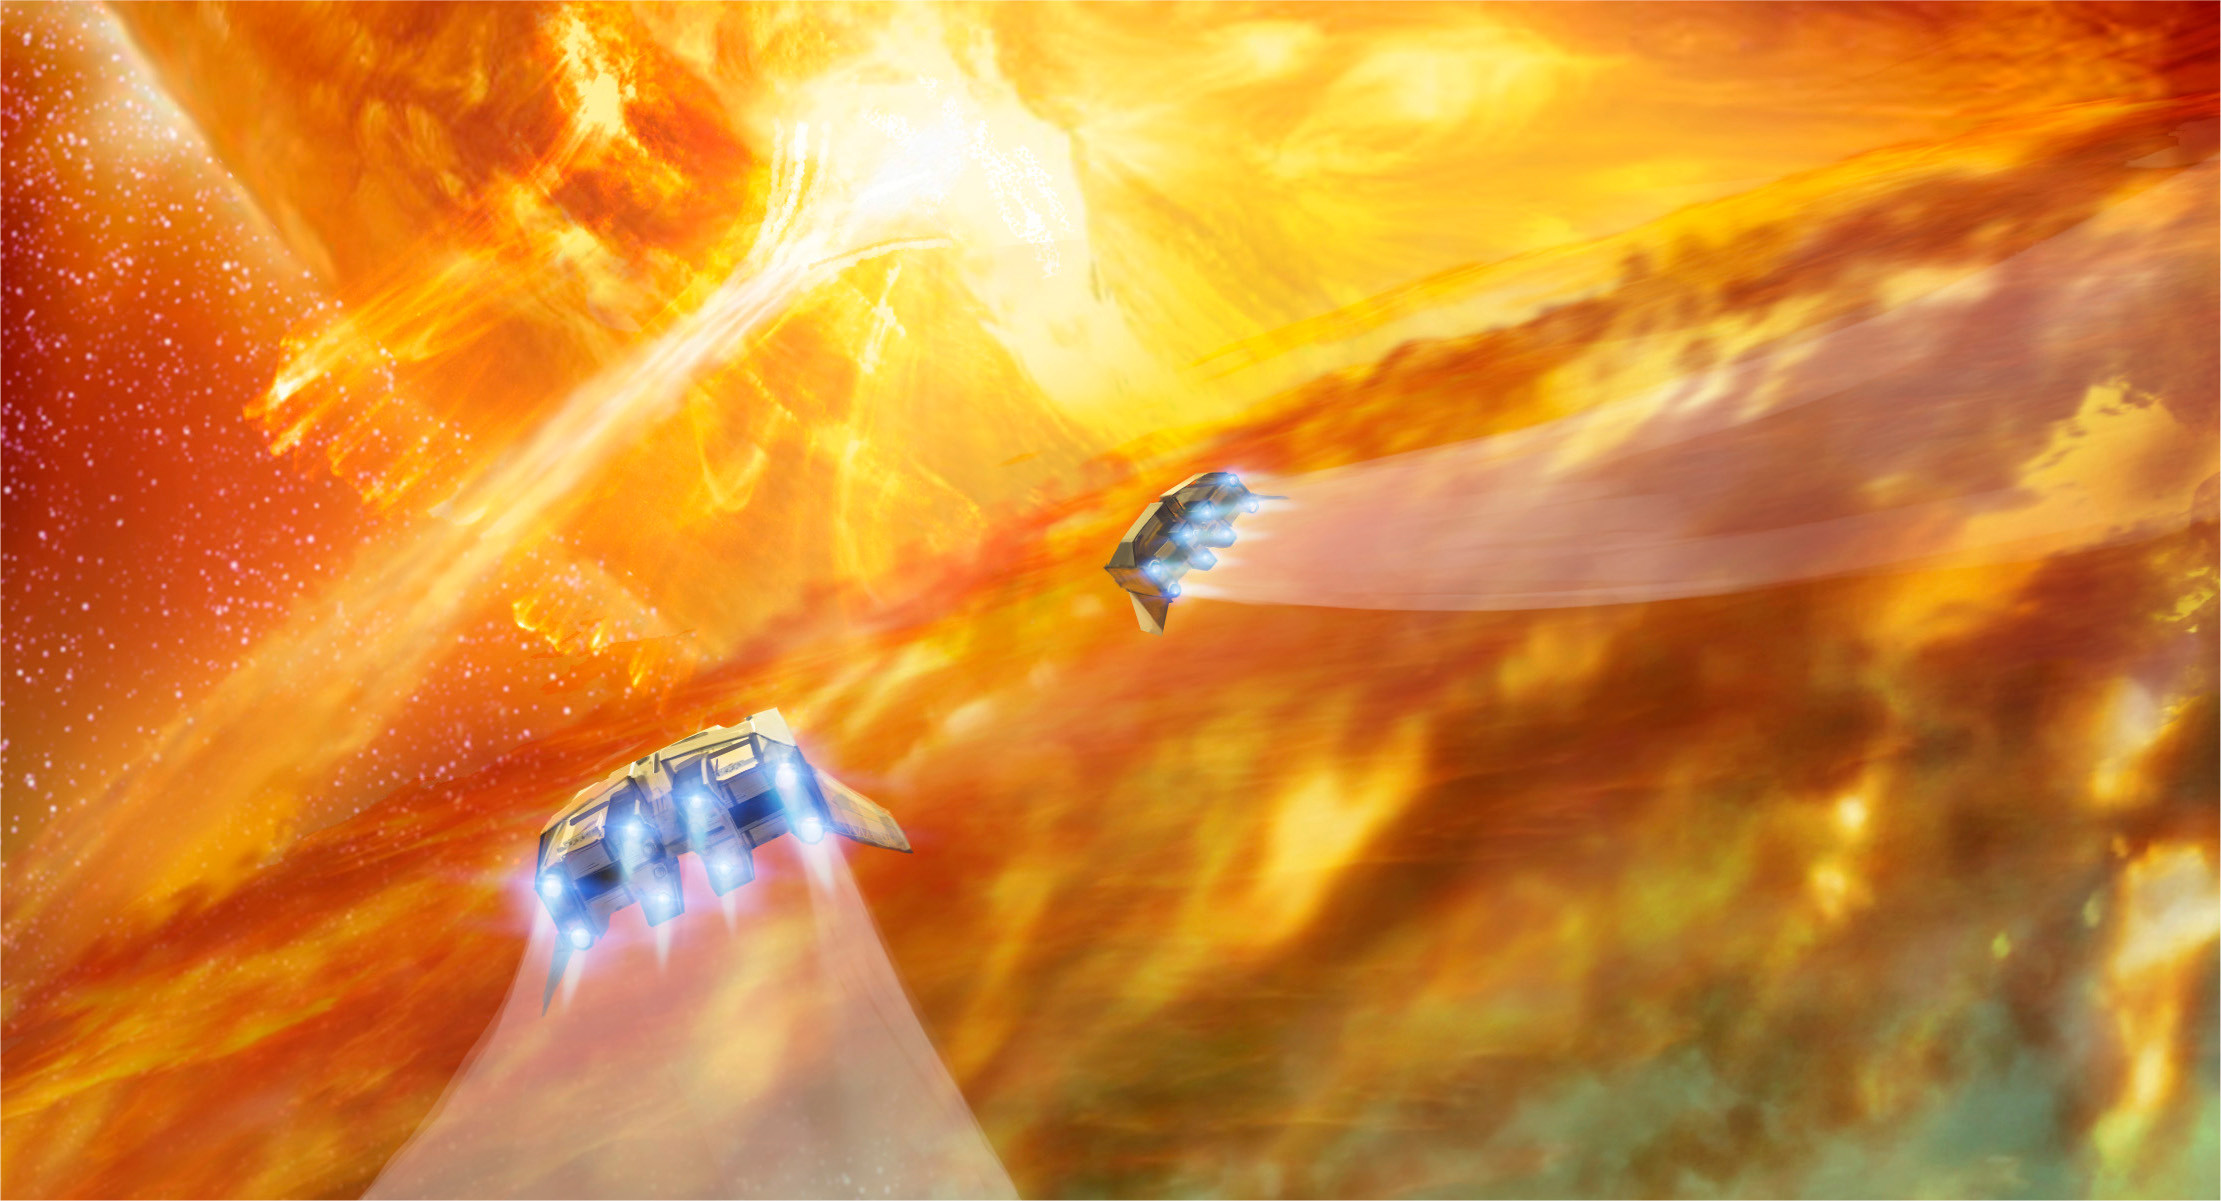 6)	Our ships skip over the ring of burning gas. With the red giant now risen out of view, the bridge between stars looms ahead like a waterfall of liquid fire.